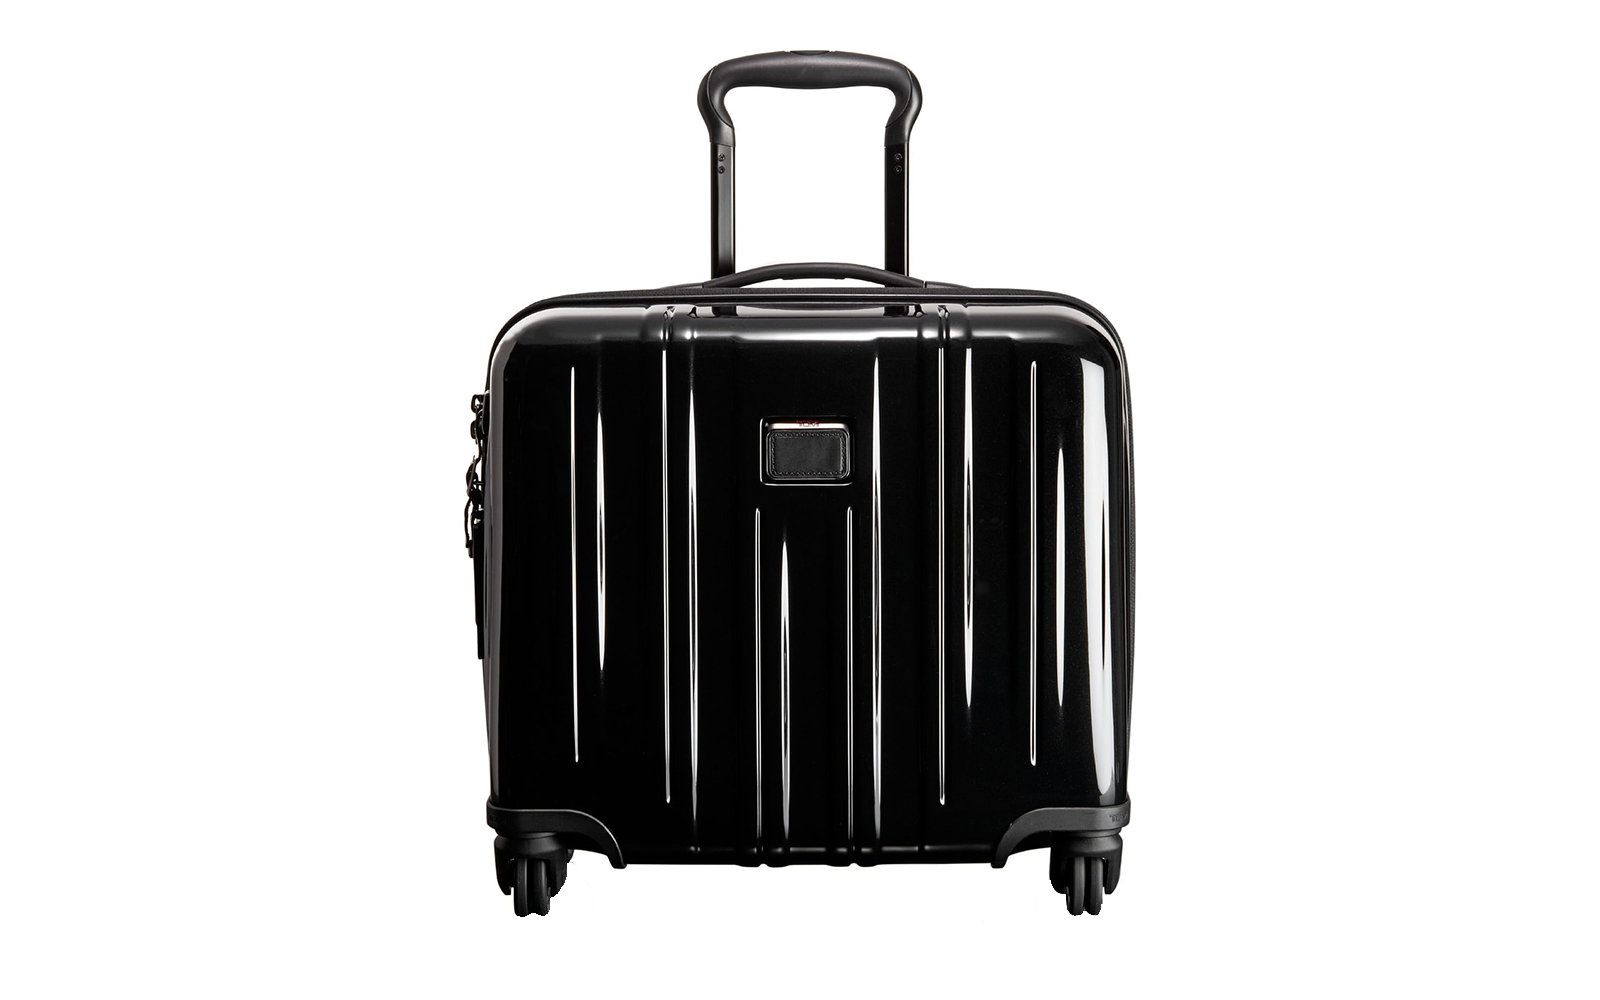 Tumi V3 Compact Carry-On Spinner Suitcase